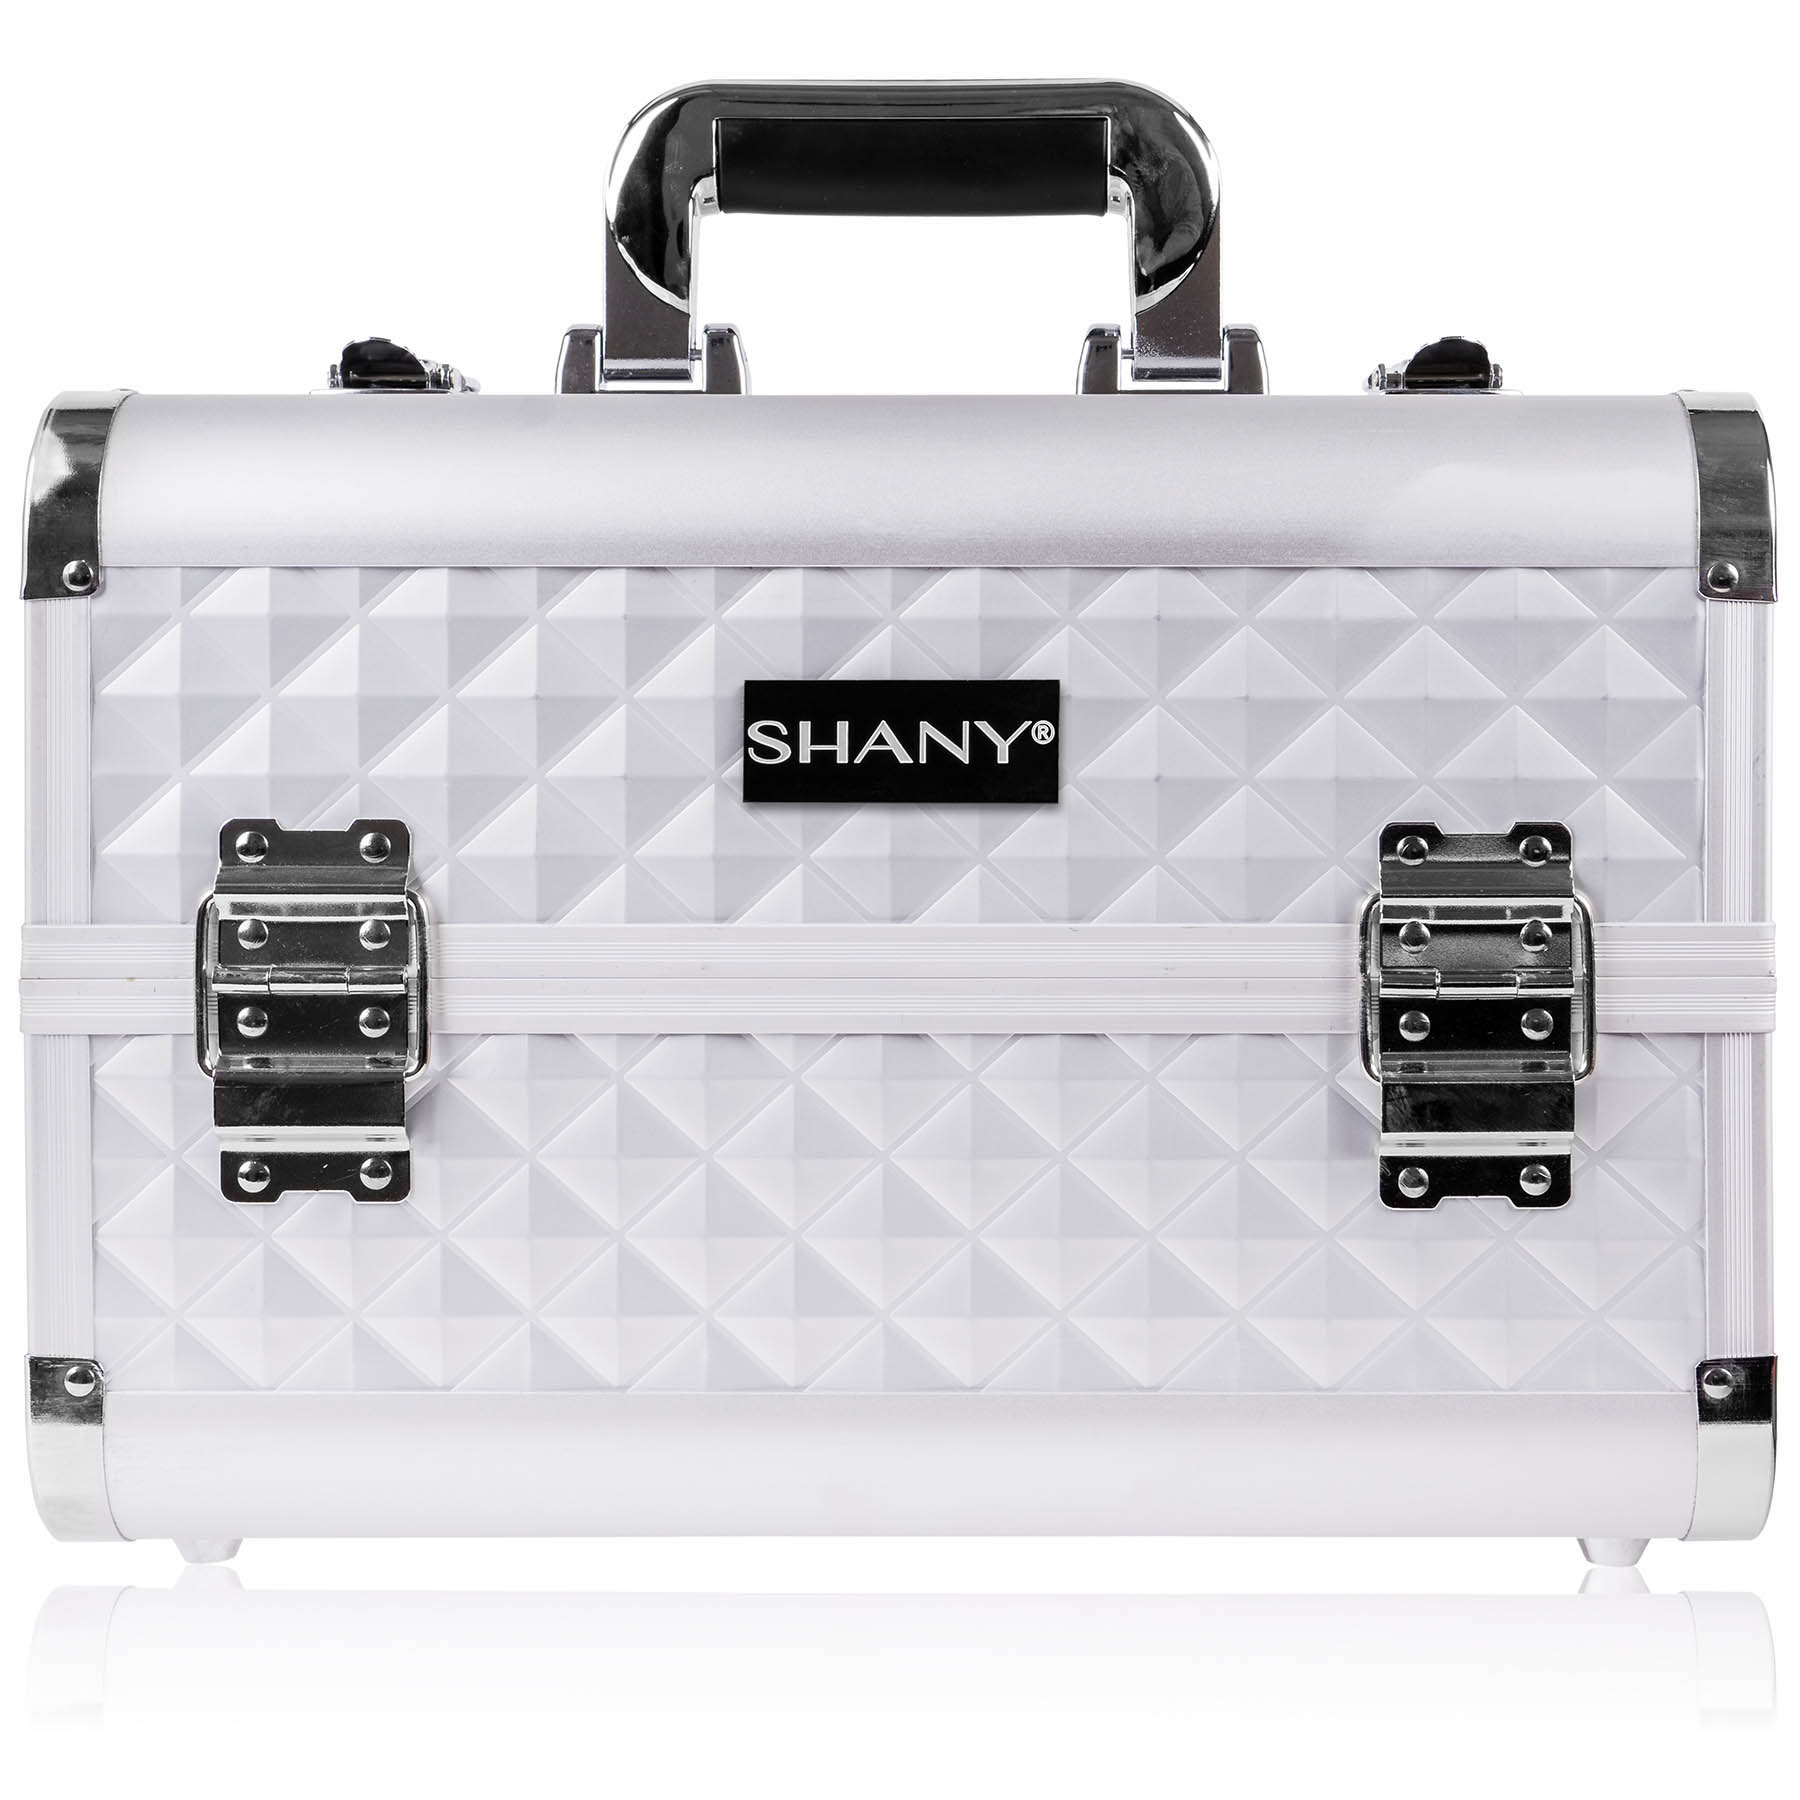 SHANY-Fantasy-Collection-Makeup-Artists-Cosmetics-Train-Case miniature 58